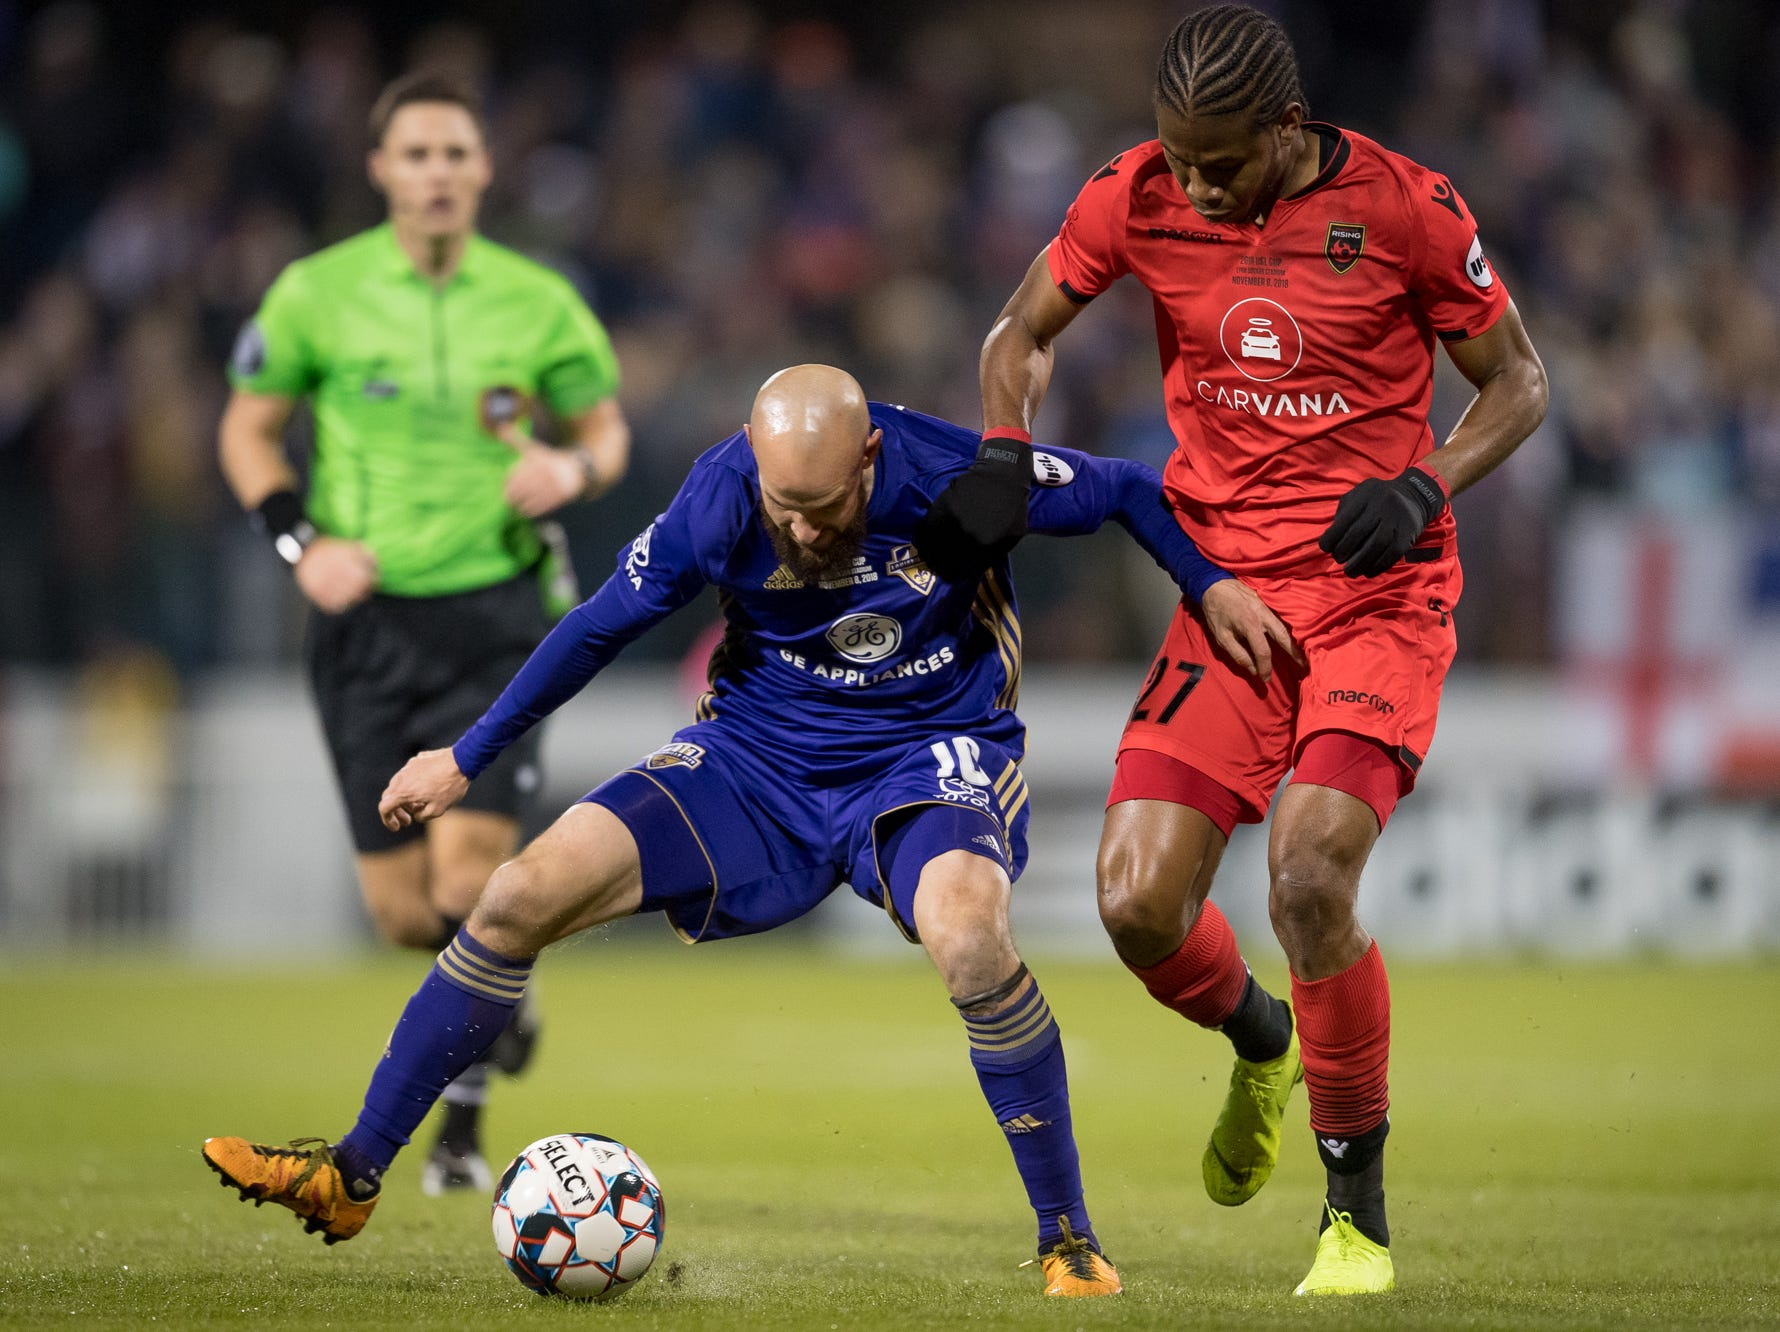 Louisville City FC midfielder Brian Ownby (10) plays against Phoenix Rising FC midfielder Kevon Lambert (27) during the USL Cup final played at Lynn Stadium on the campus of the University of Louisville, Louisville, Ky., Thursday, Nov., 8, 2018.